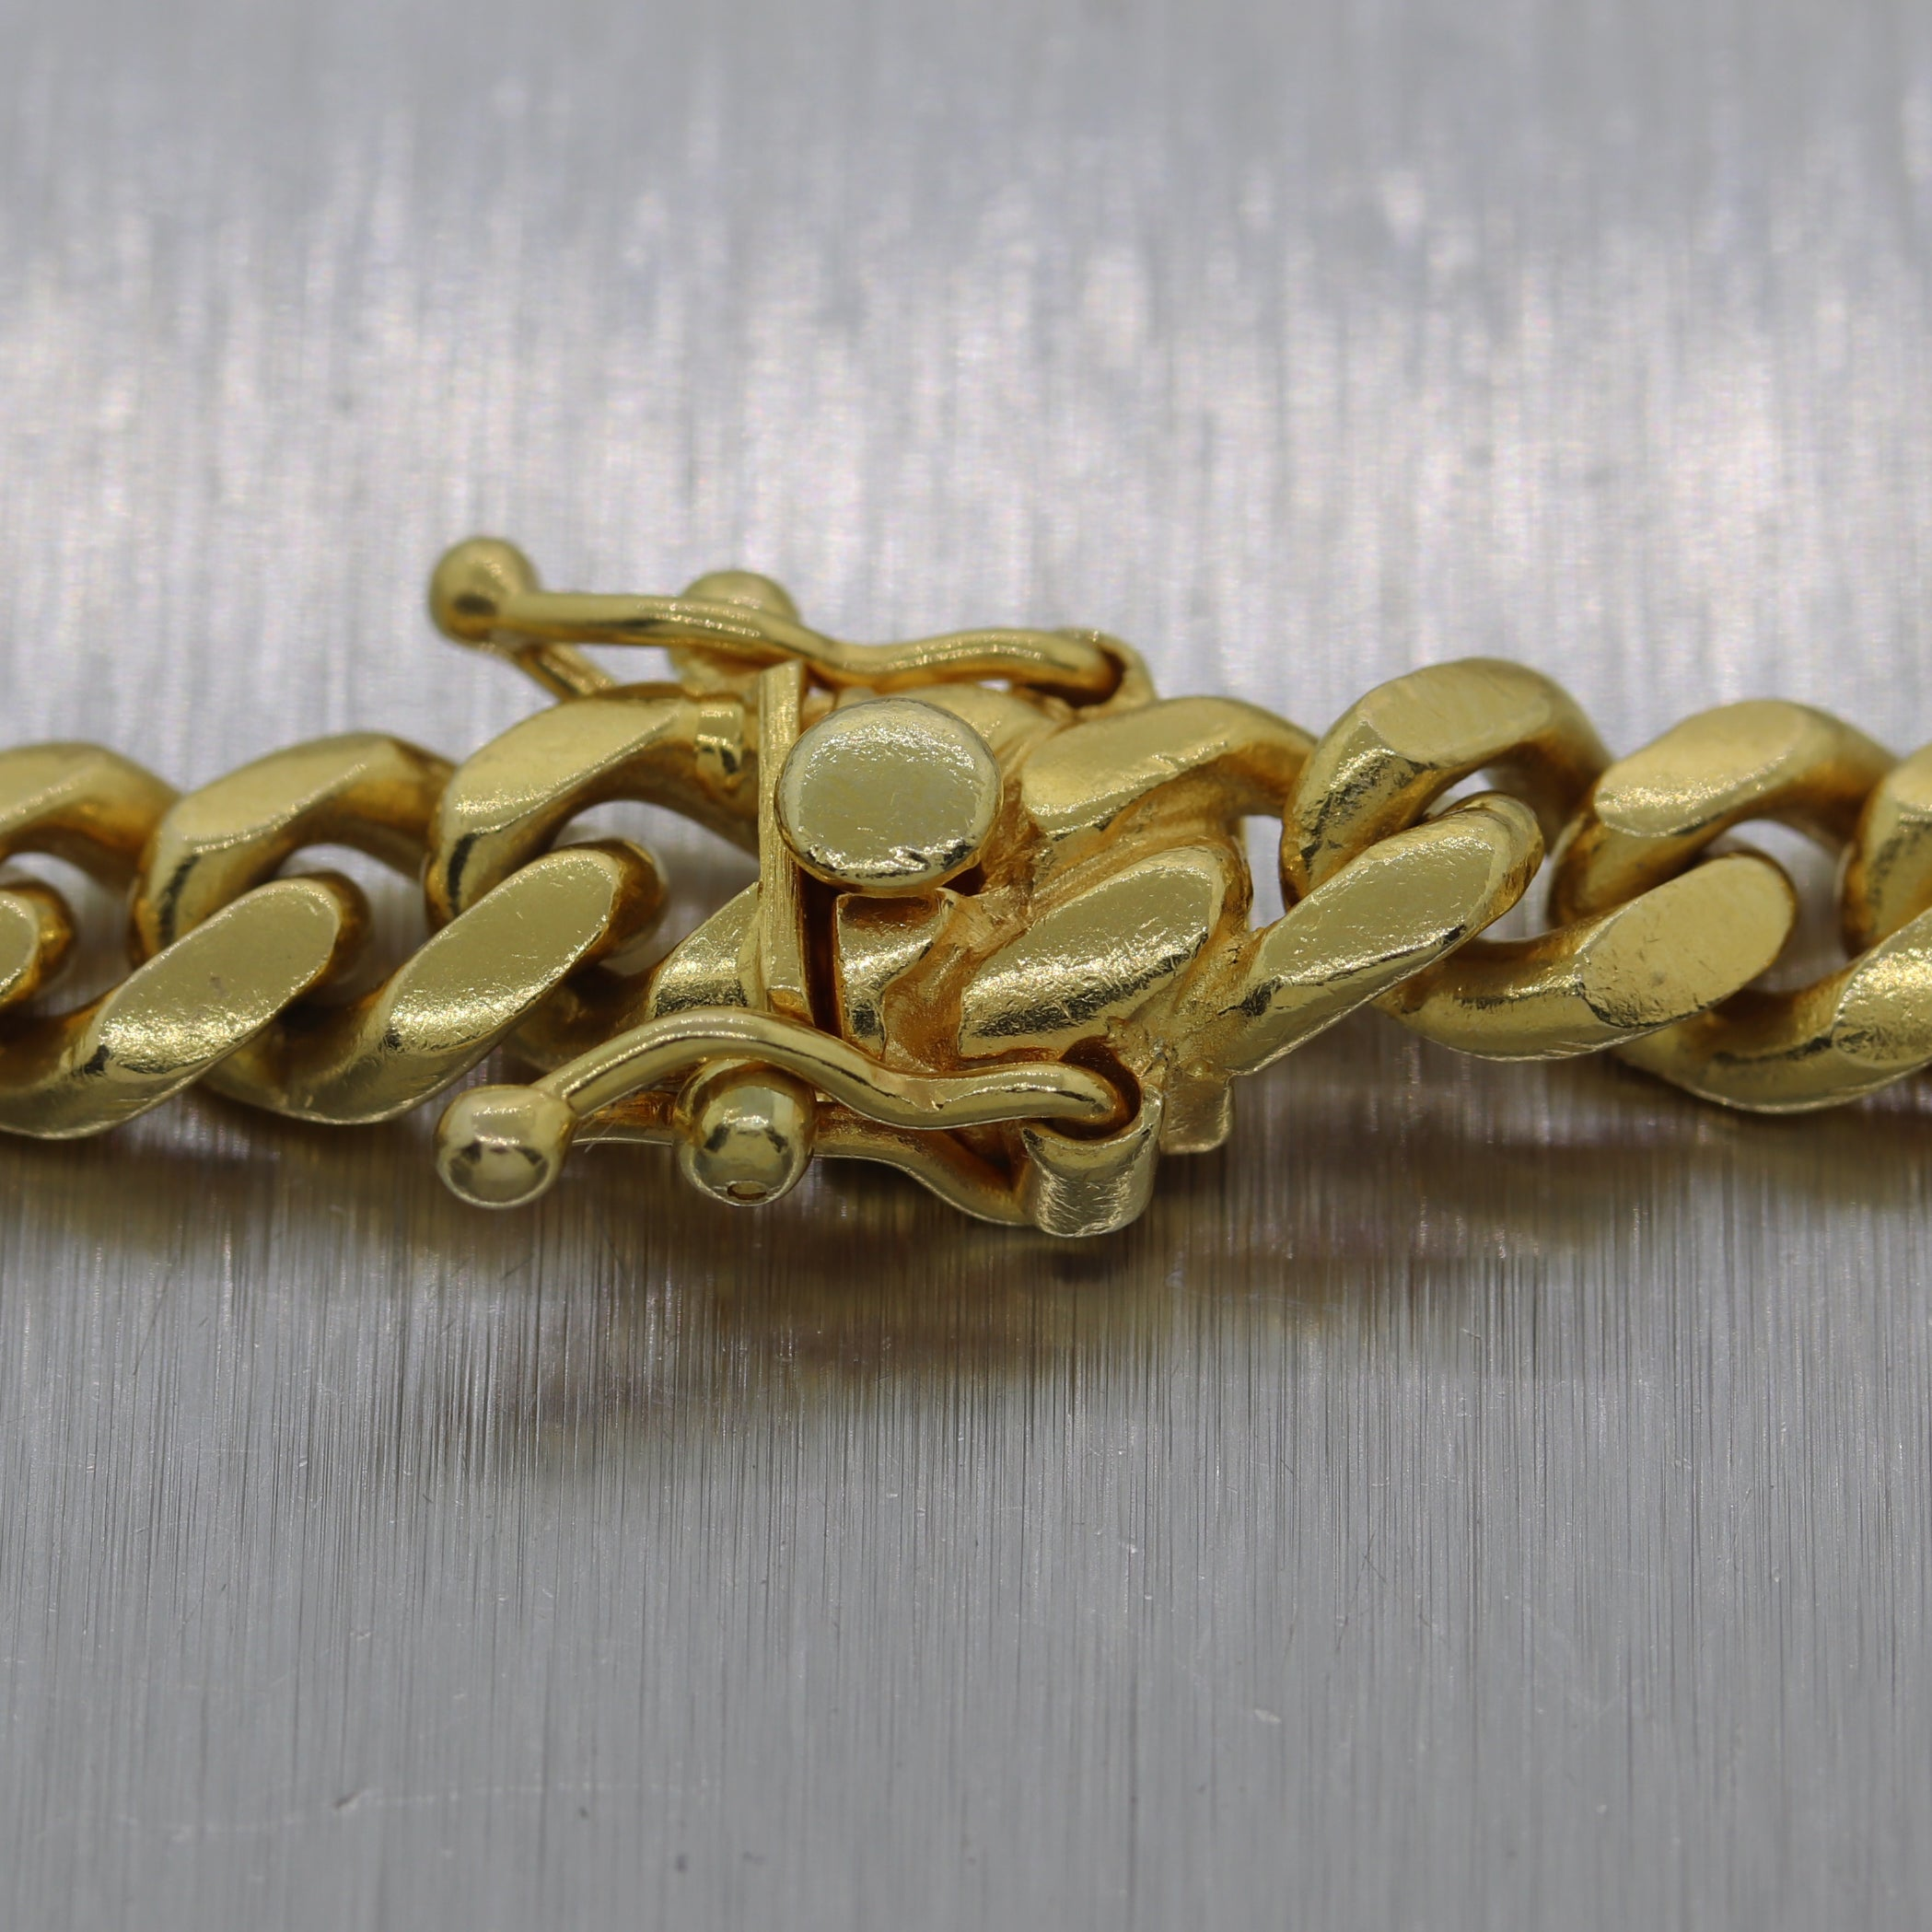 "Modern 111.3g 14k Yellow Gold Miami Cuban Link 30"" Chain Necklace"